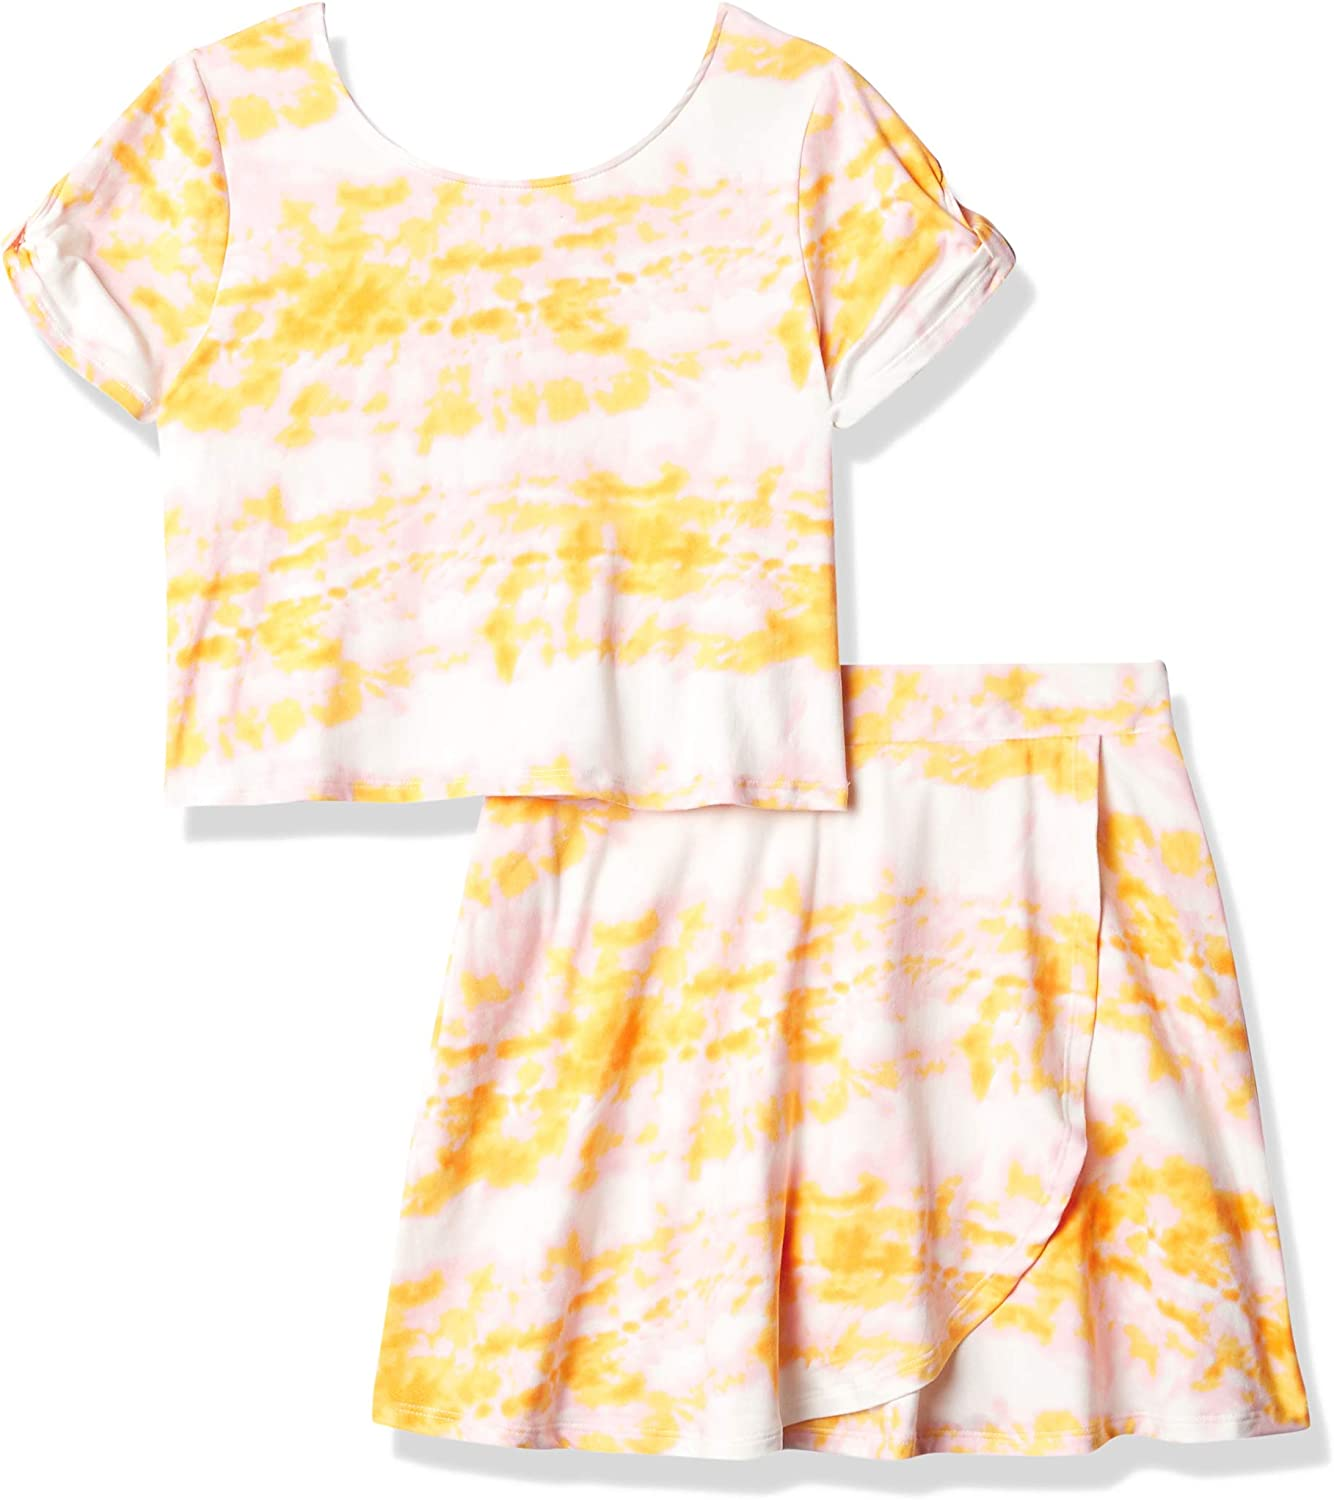 Speechless girls Short Sleeve Top and Skirt Set: Clothing, Shoes & Jewelry